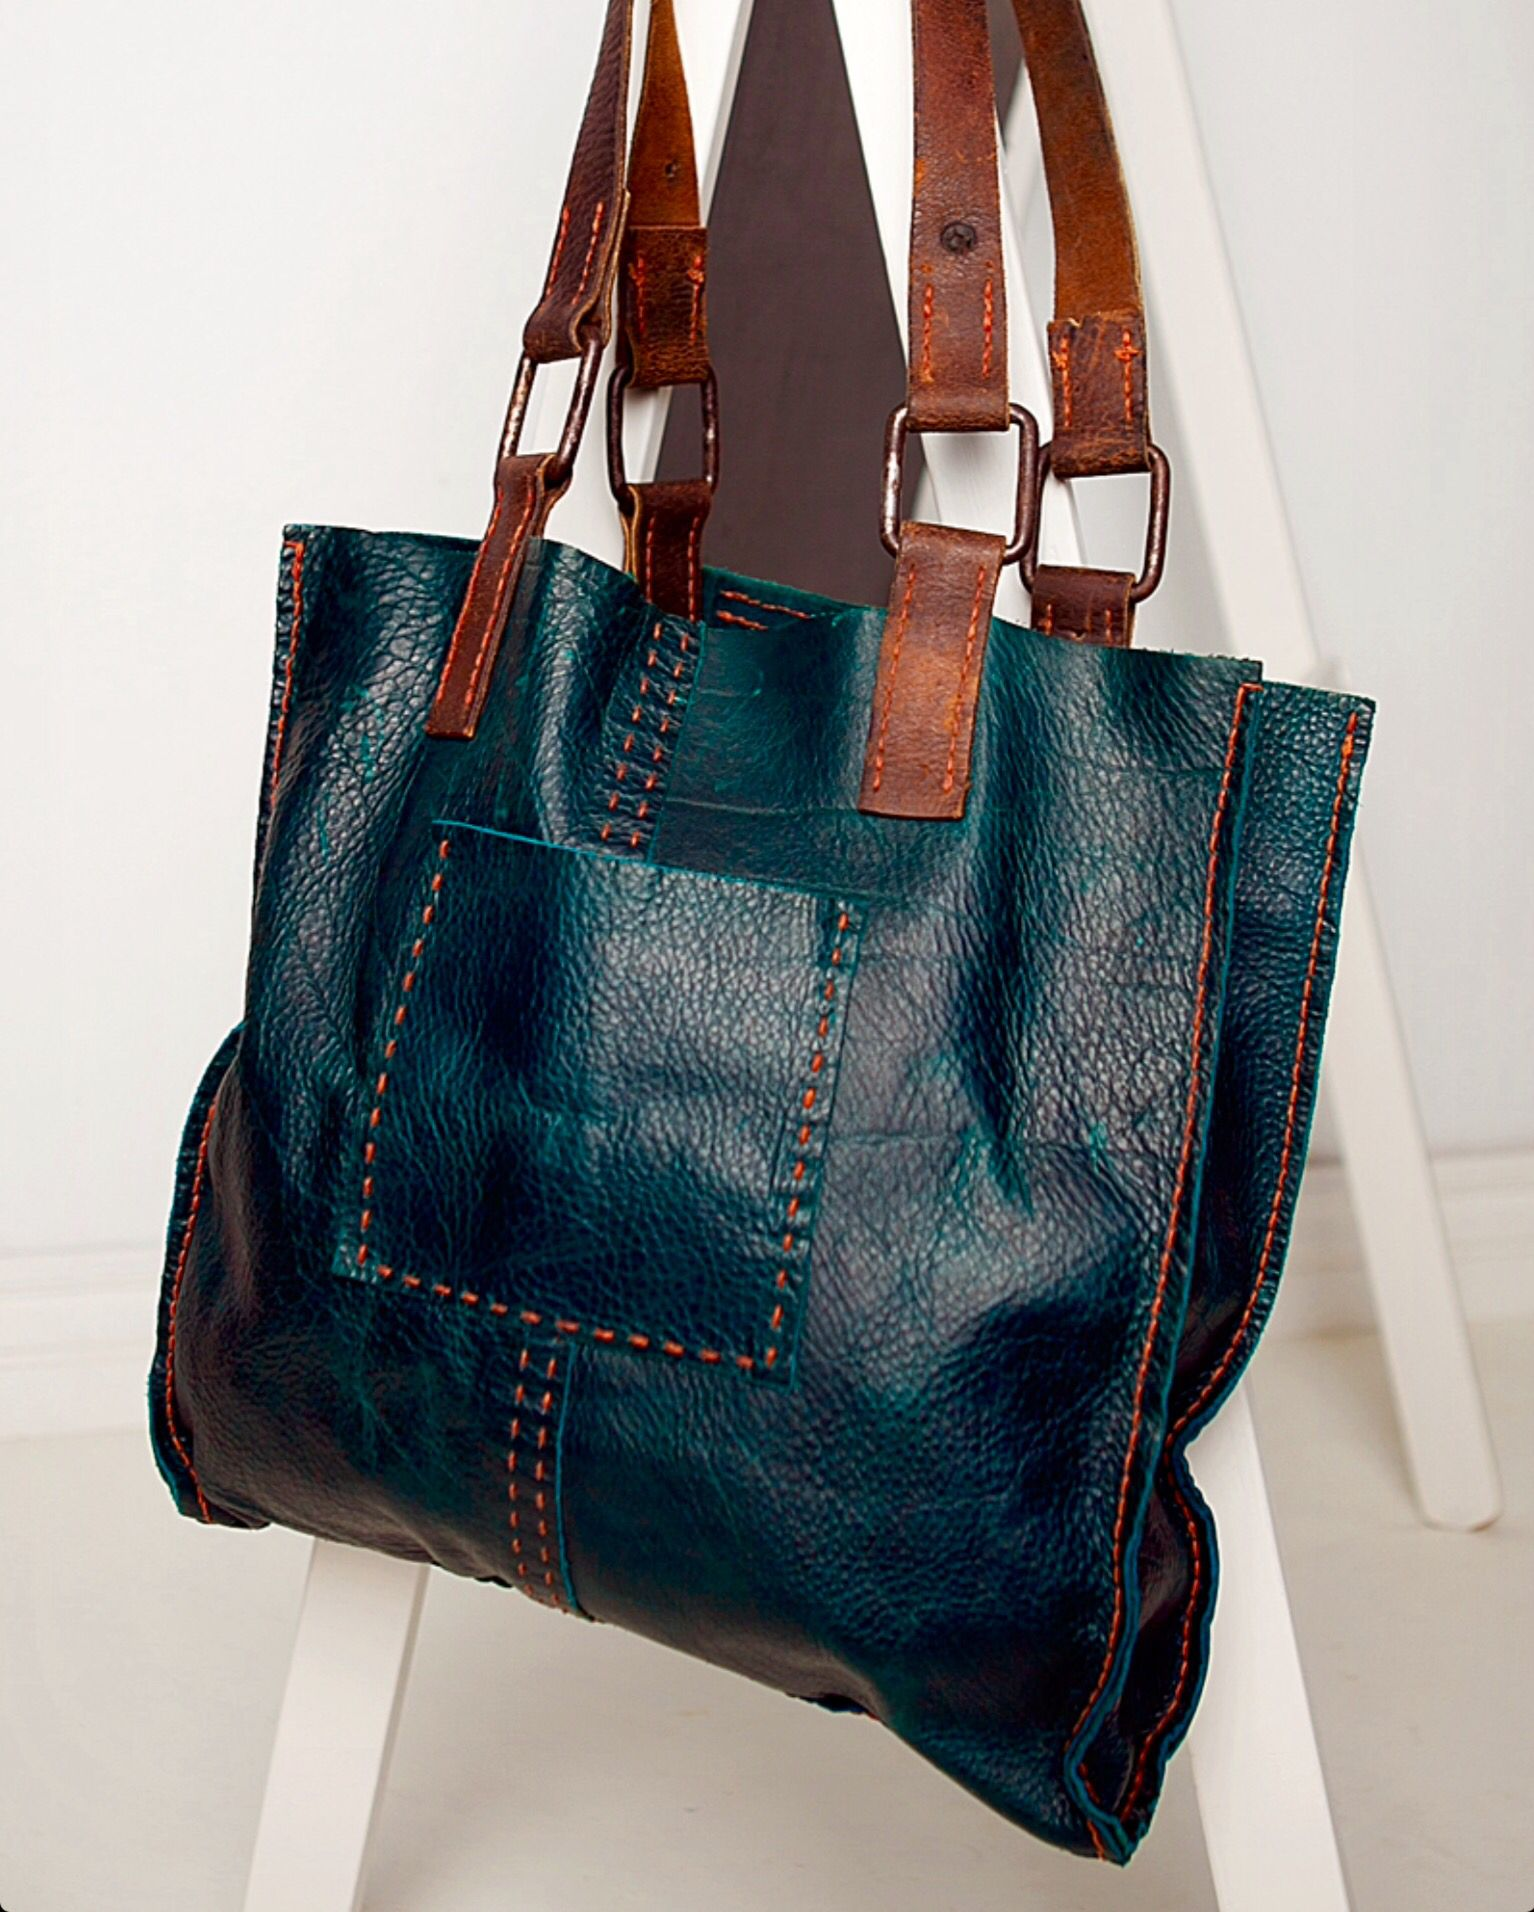 CIBADO leather bags Entirely hand sewn teal buffalo leather tote  incorporating vintage horse tack to become handles and decorative detail.  easy casual cool ... e0a30b79399fd